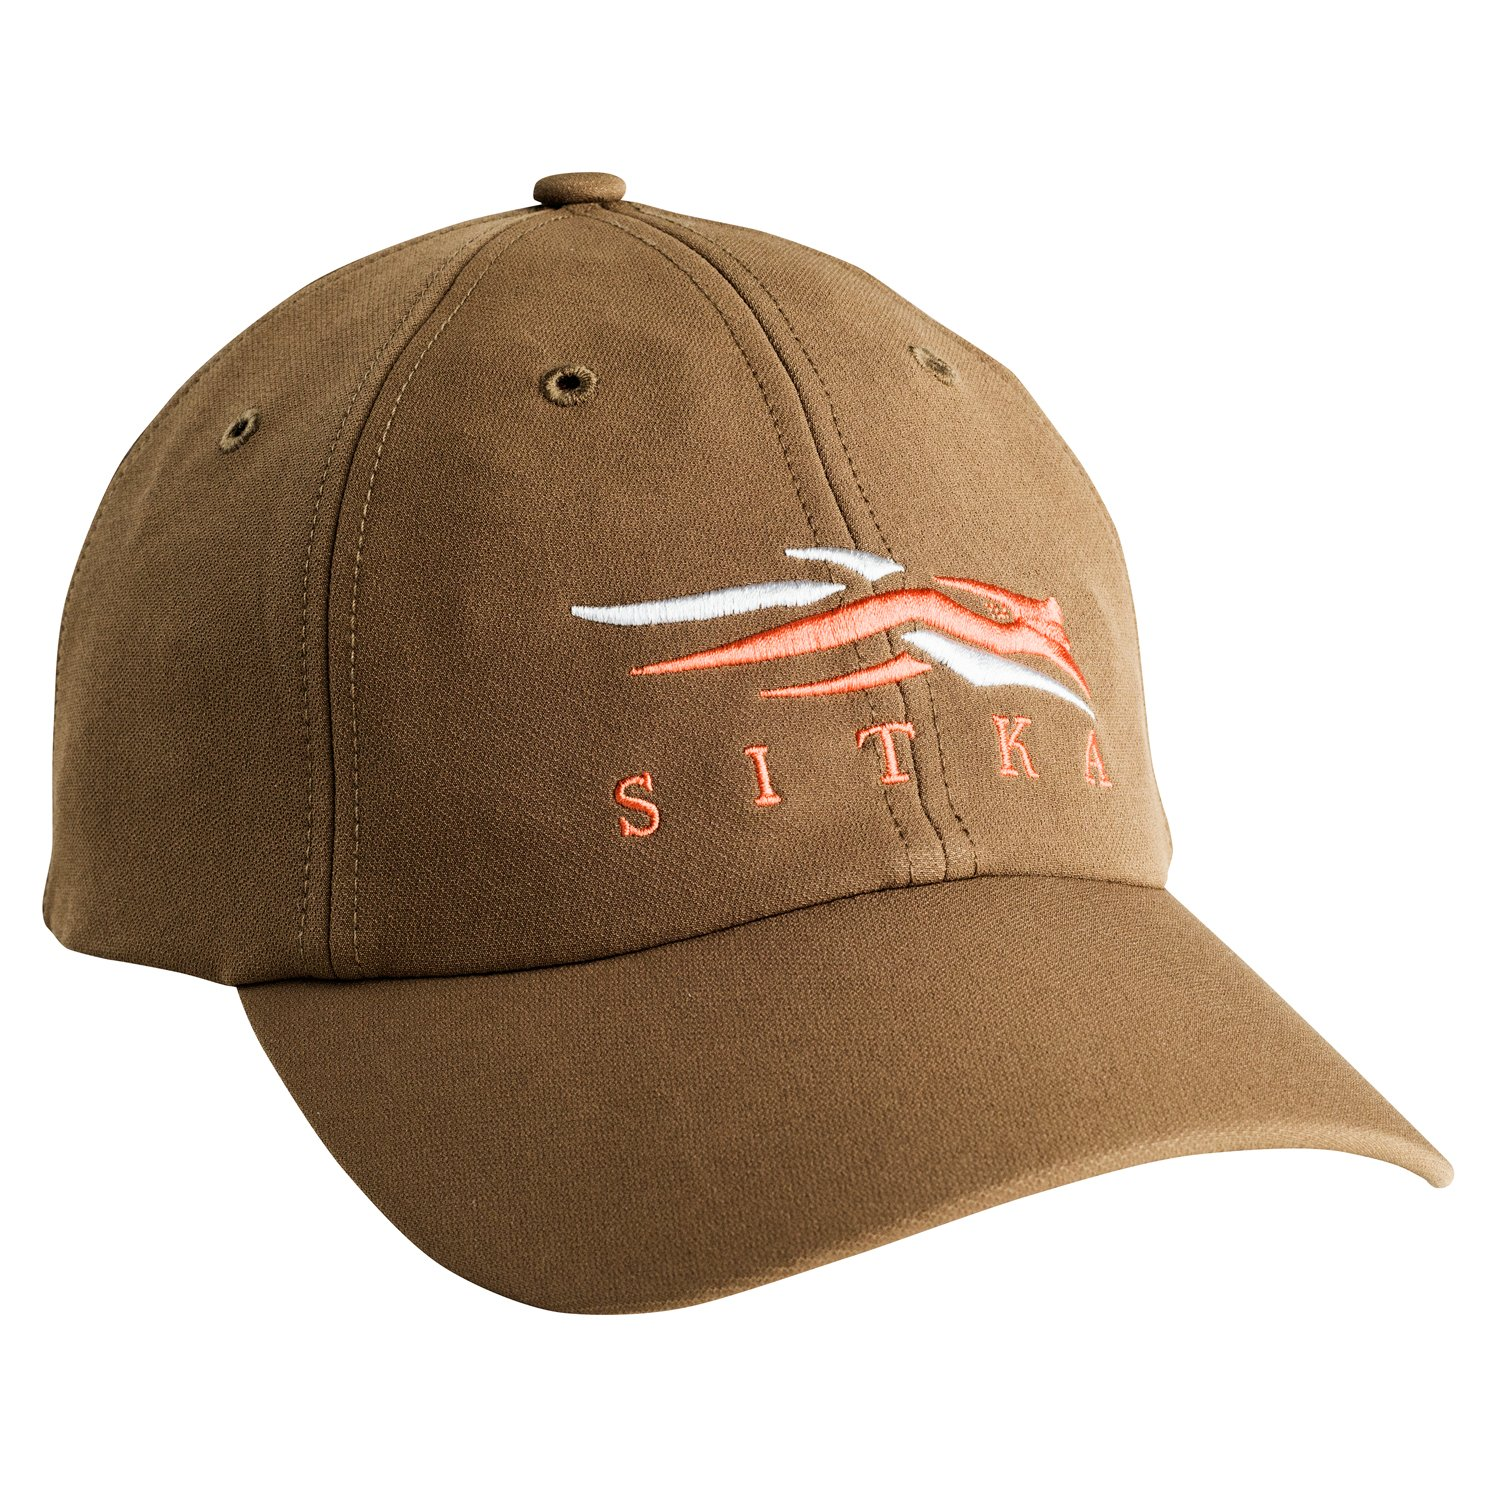 SITKA Gear Cap Mud One Size Fits All